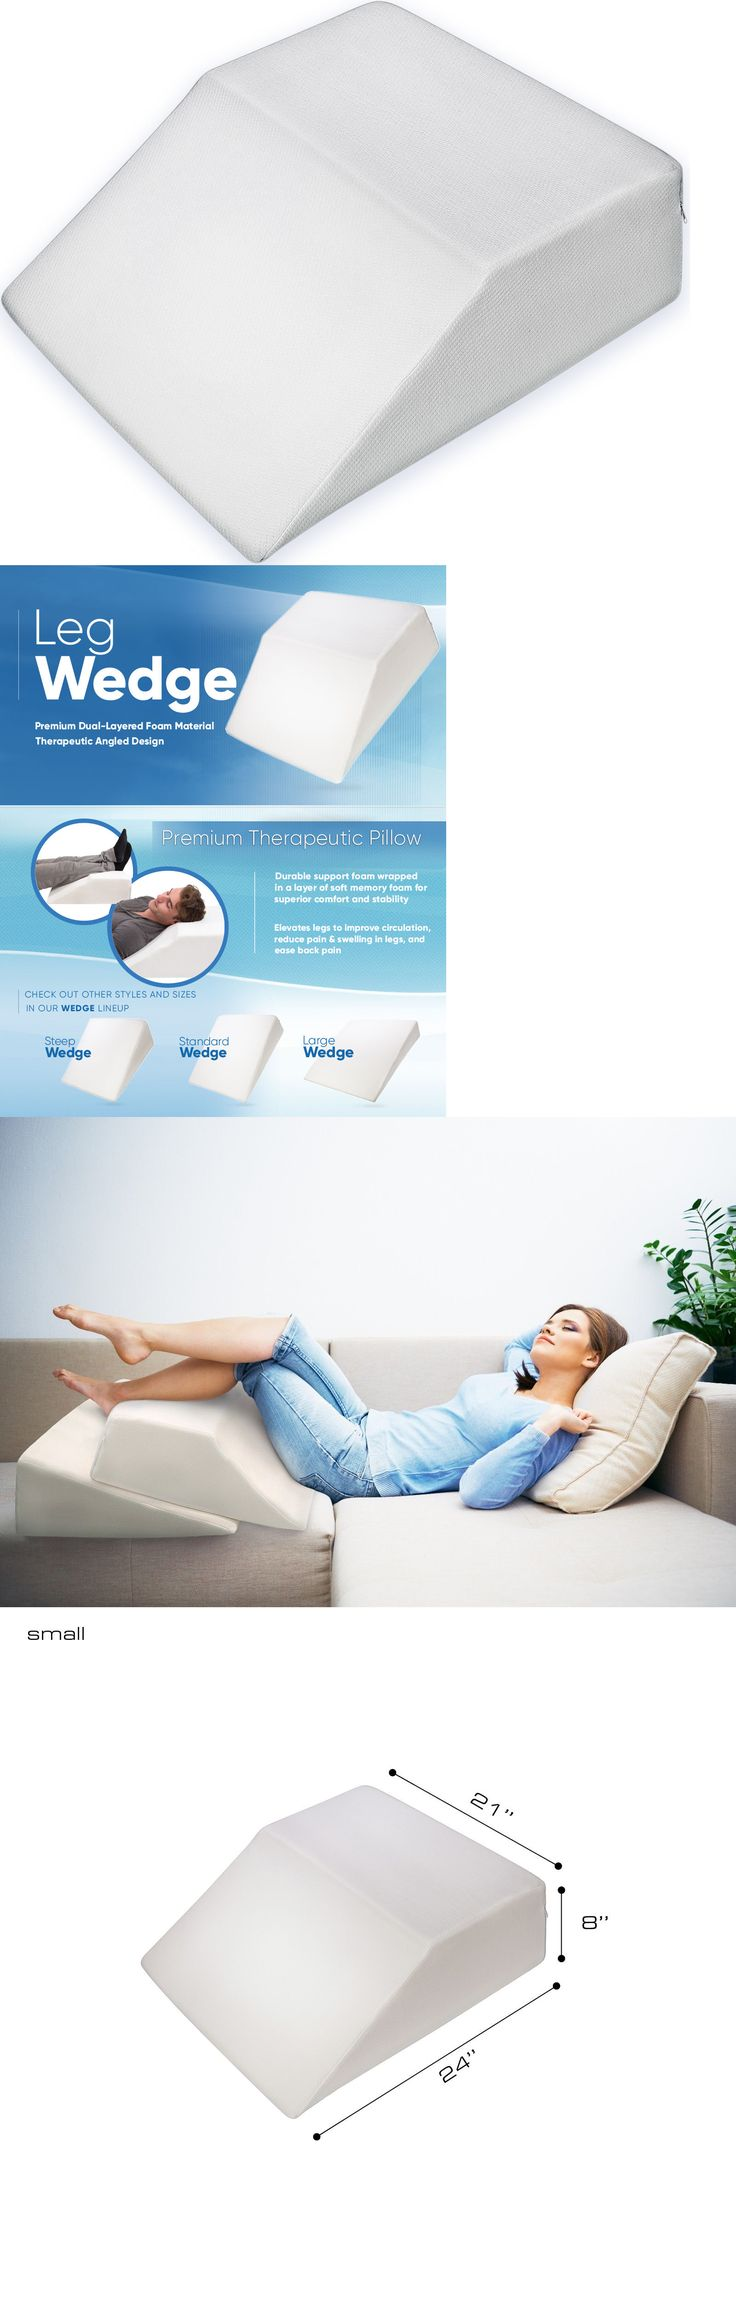 Bed wedge under mattress - Wedges And Bed Positioners Pharmedoc Elevating Leg Rest Wedge Bed Pillow Acid Reflux Pain